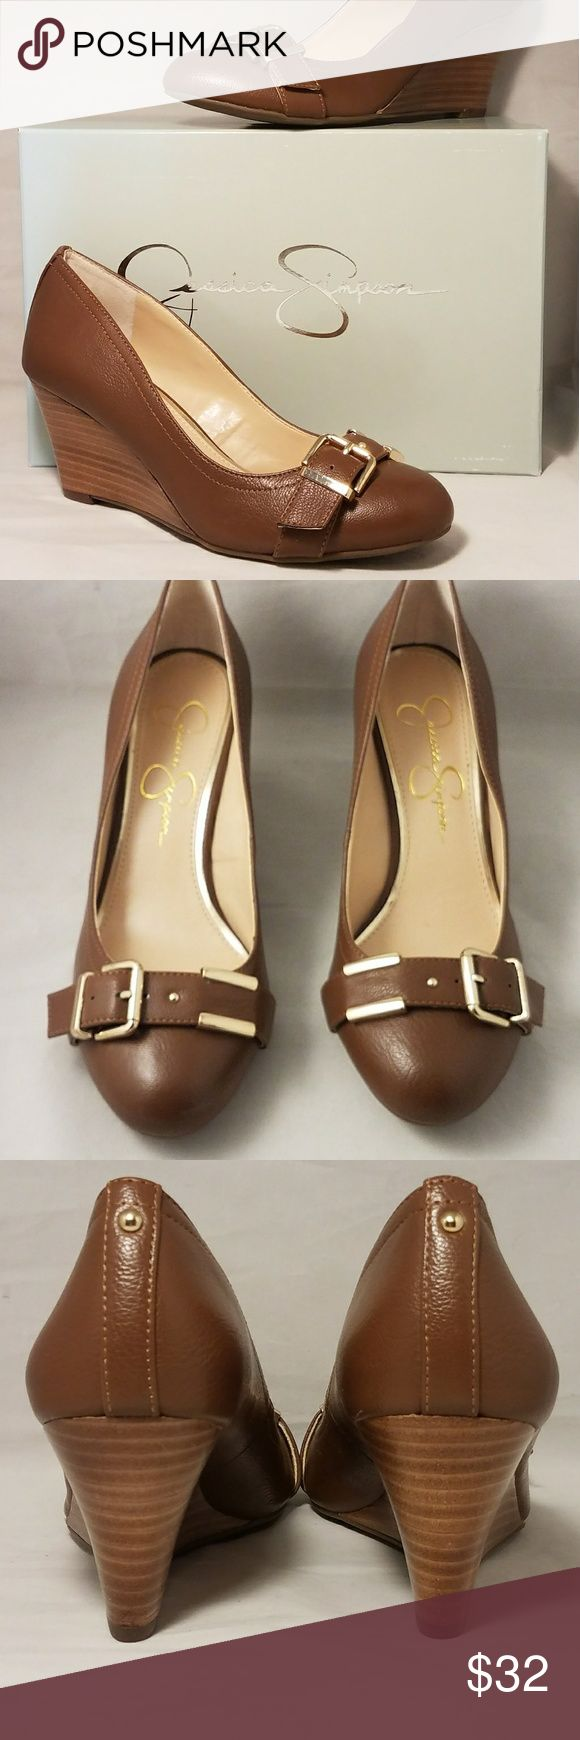 """JESSICA SIMPSON WEDGED HEEL SHOE Offering a brand new in box pair of Jessica Simpson WEDGED HEEL Shoes . Color is Stanwick Bourbon  Size is 6 medium  3"""" WEDGED heel   ✔ AVAILABLE  🚫TRADES 🚫HOLDS 💰SAVE 10% 2x ITEMS 📦 NEXT DAY    Jessica Simpson Shoes Wedges"""